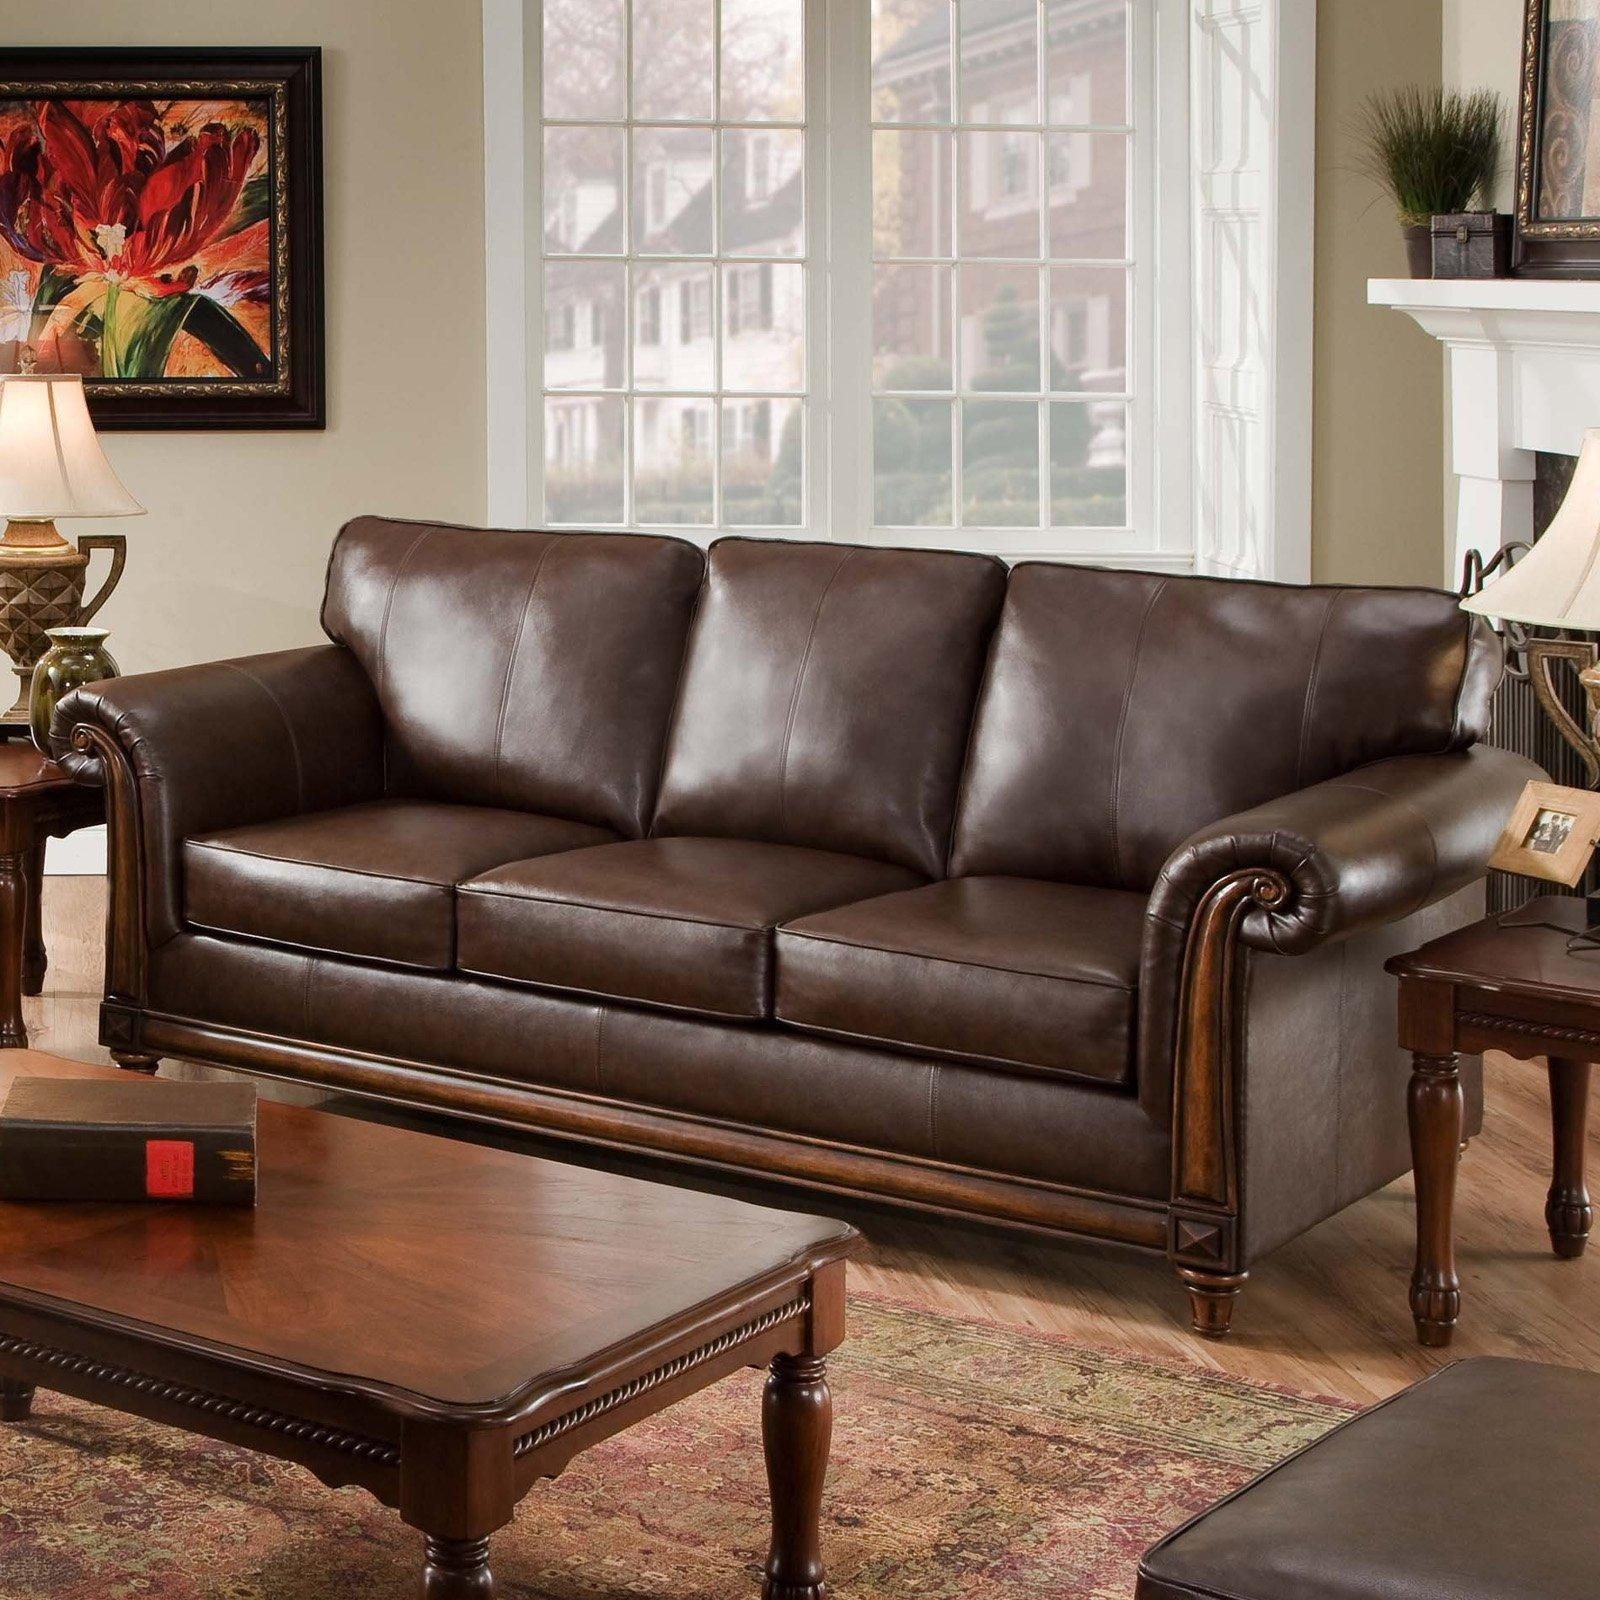 Belham Living Owen Leather Sofa | Hayneedle For High Quality Leather Sectional (Image 3 of 20)